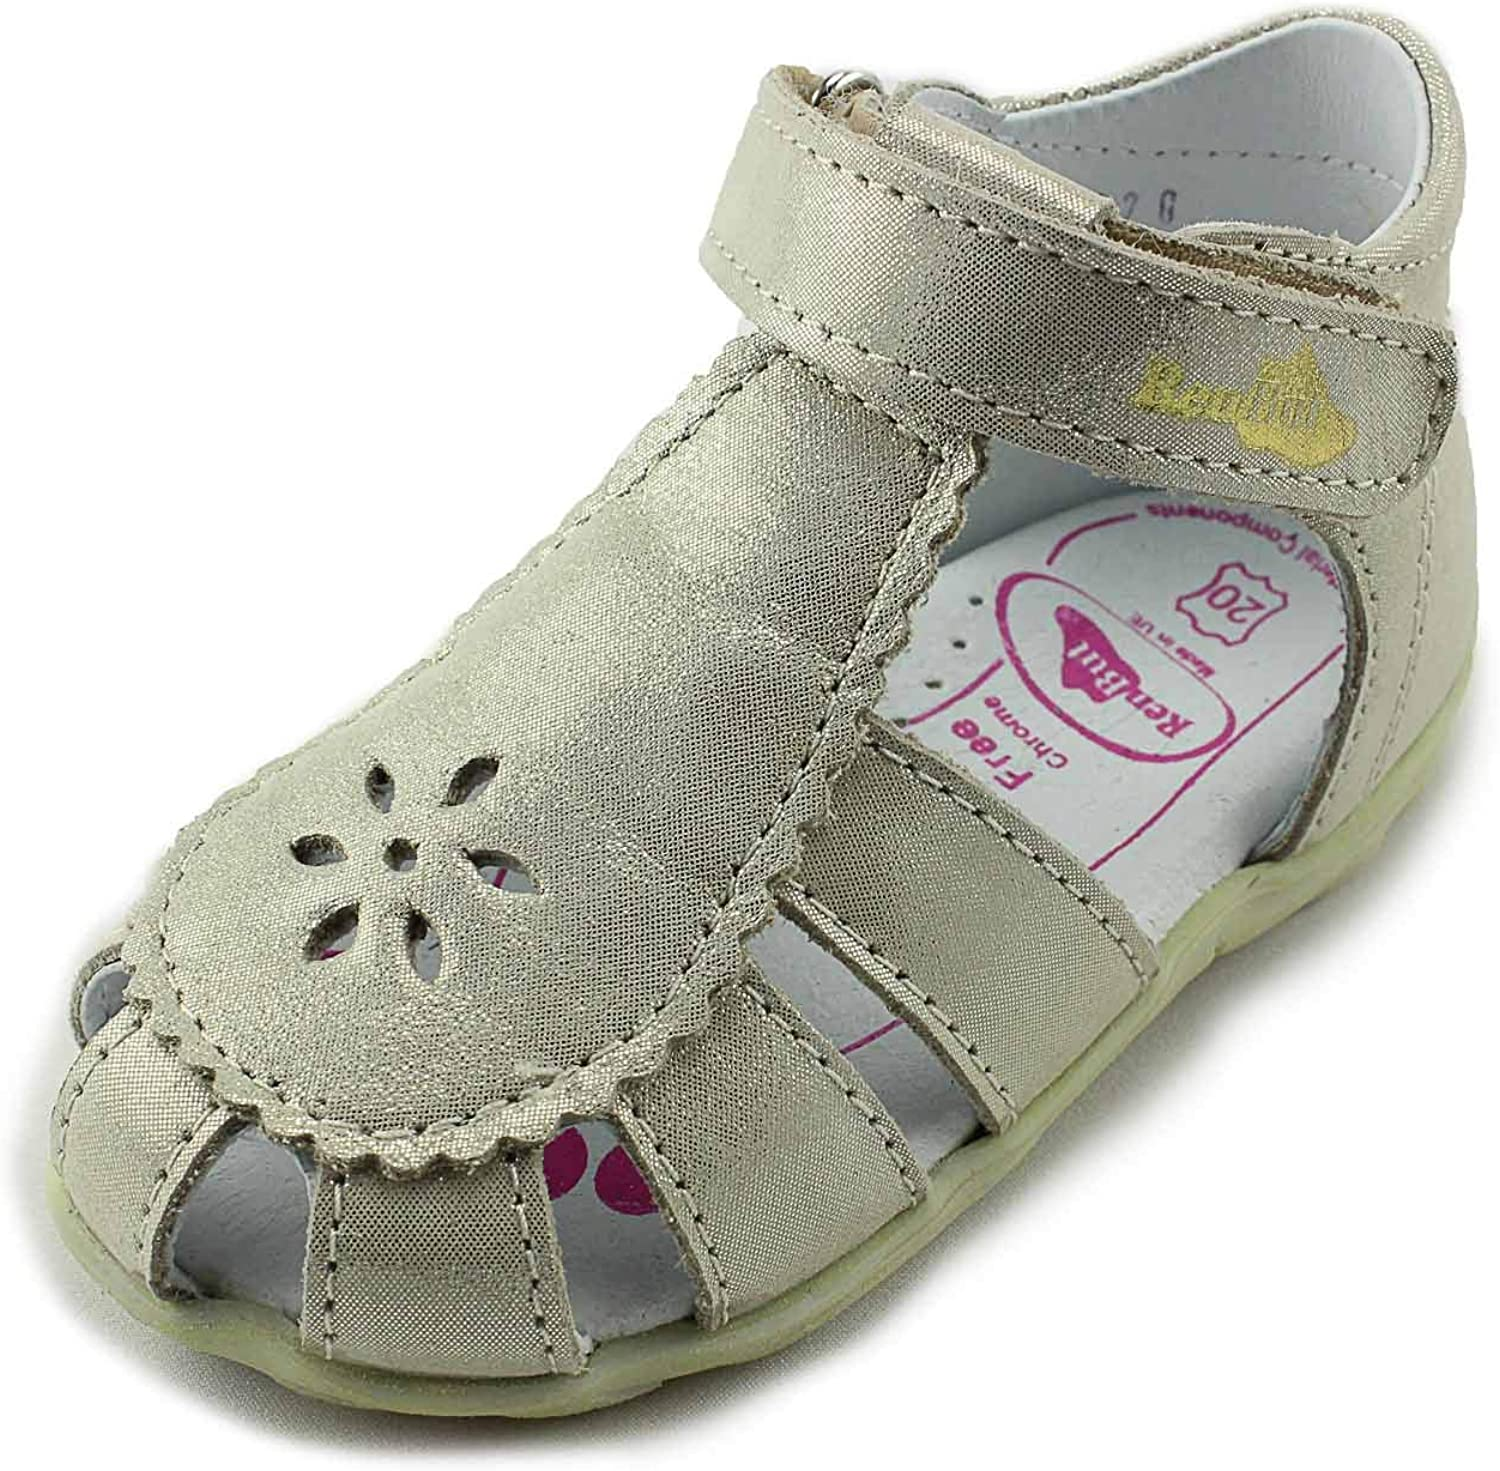 Infant//Toddler Ankle and Orthopedic Support 11-1477 Zloty RenBut Girls Closed Toe Leather Sandals with Arch